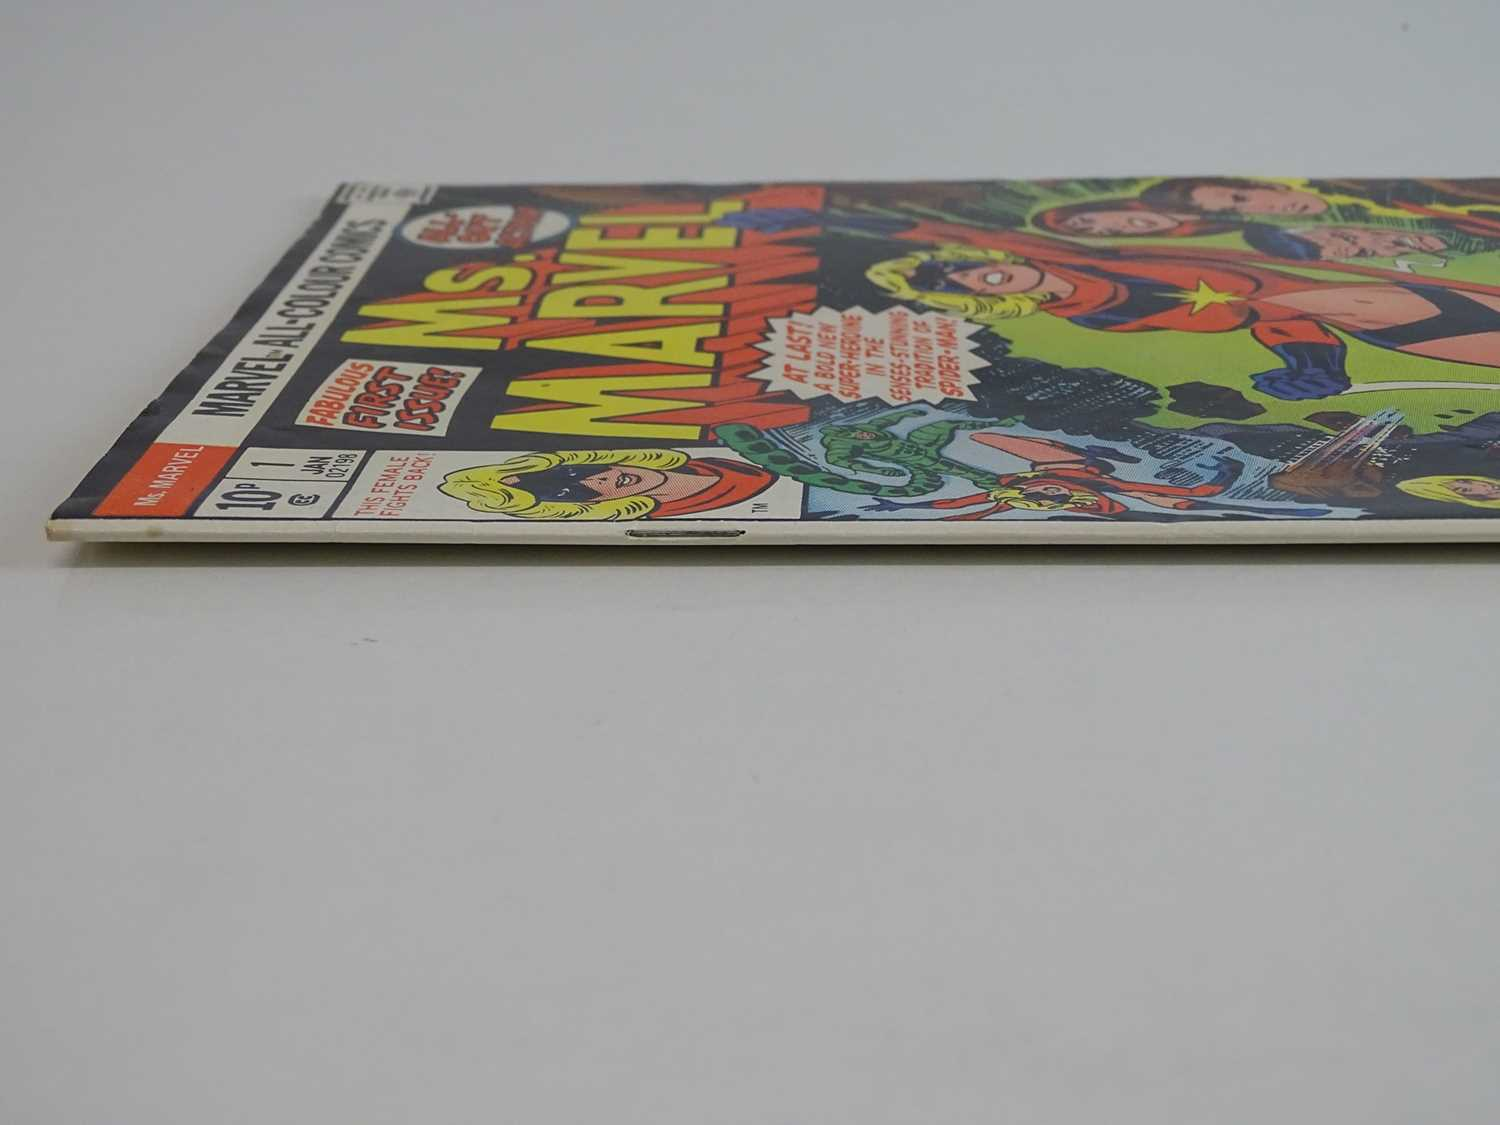 MS. MARVEL #1 - (1977 - MARVEL - UK Price Variant) - Ms. Marvel's first own title solo series + - Image 8 of 9